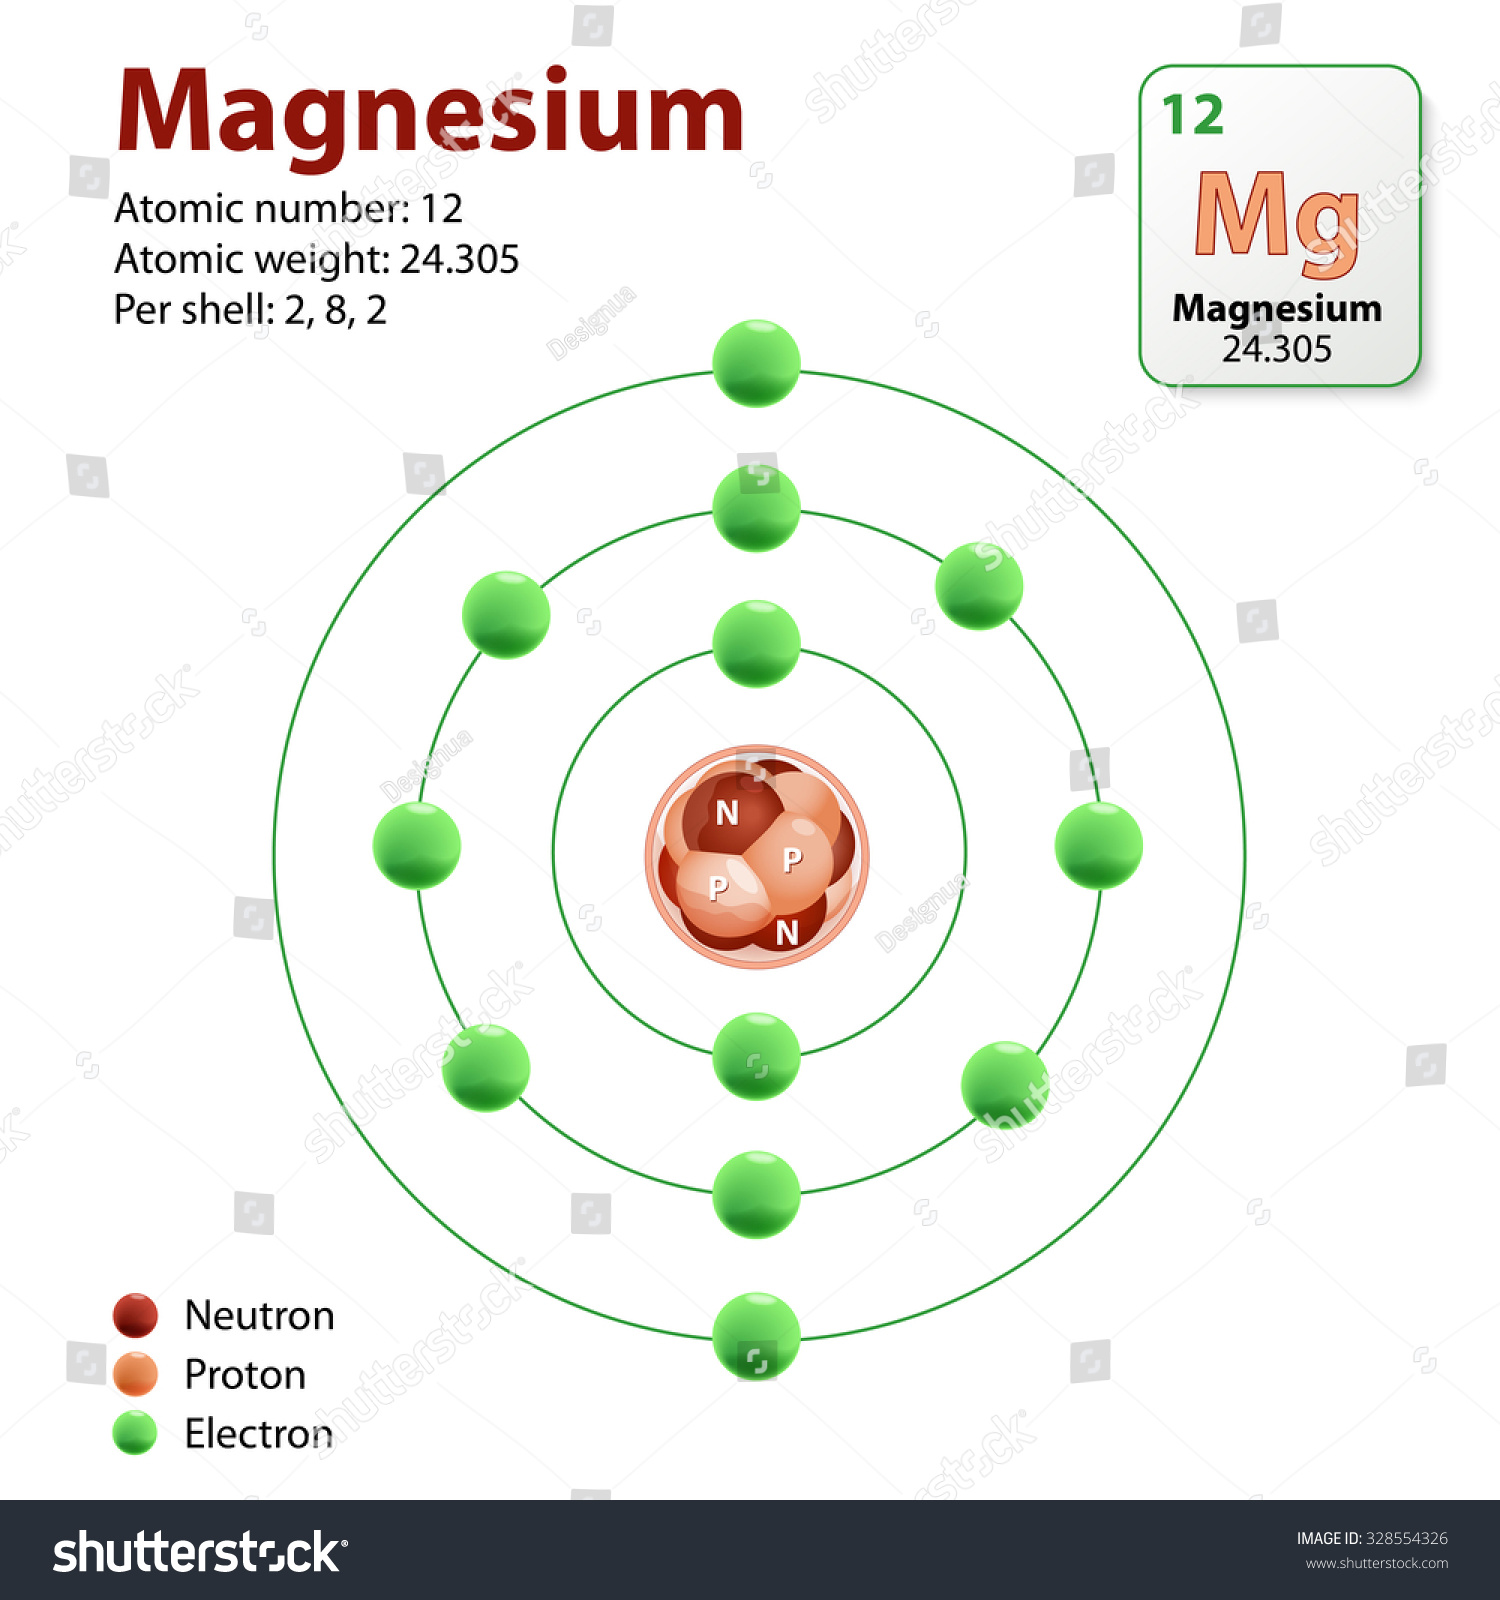 element particle diagram 2002 chevy avalanche problems representation magnesium neutrons protons